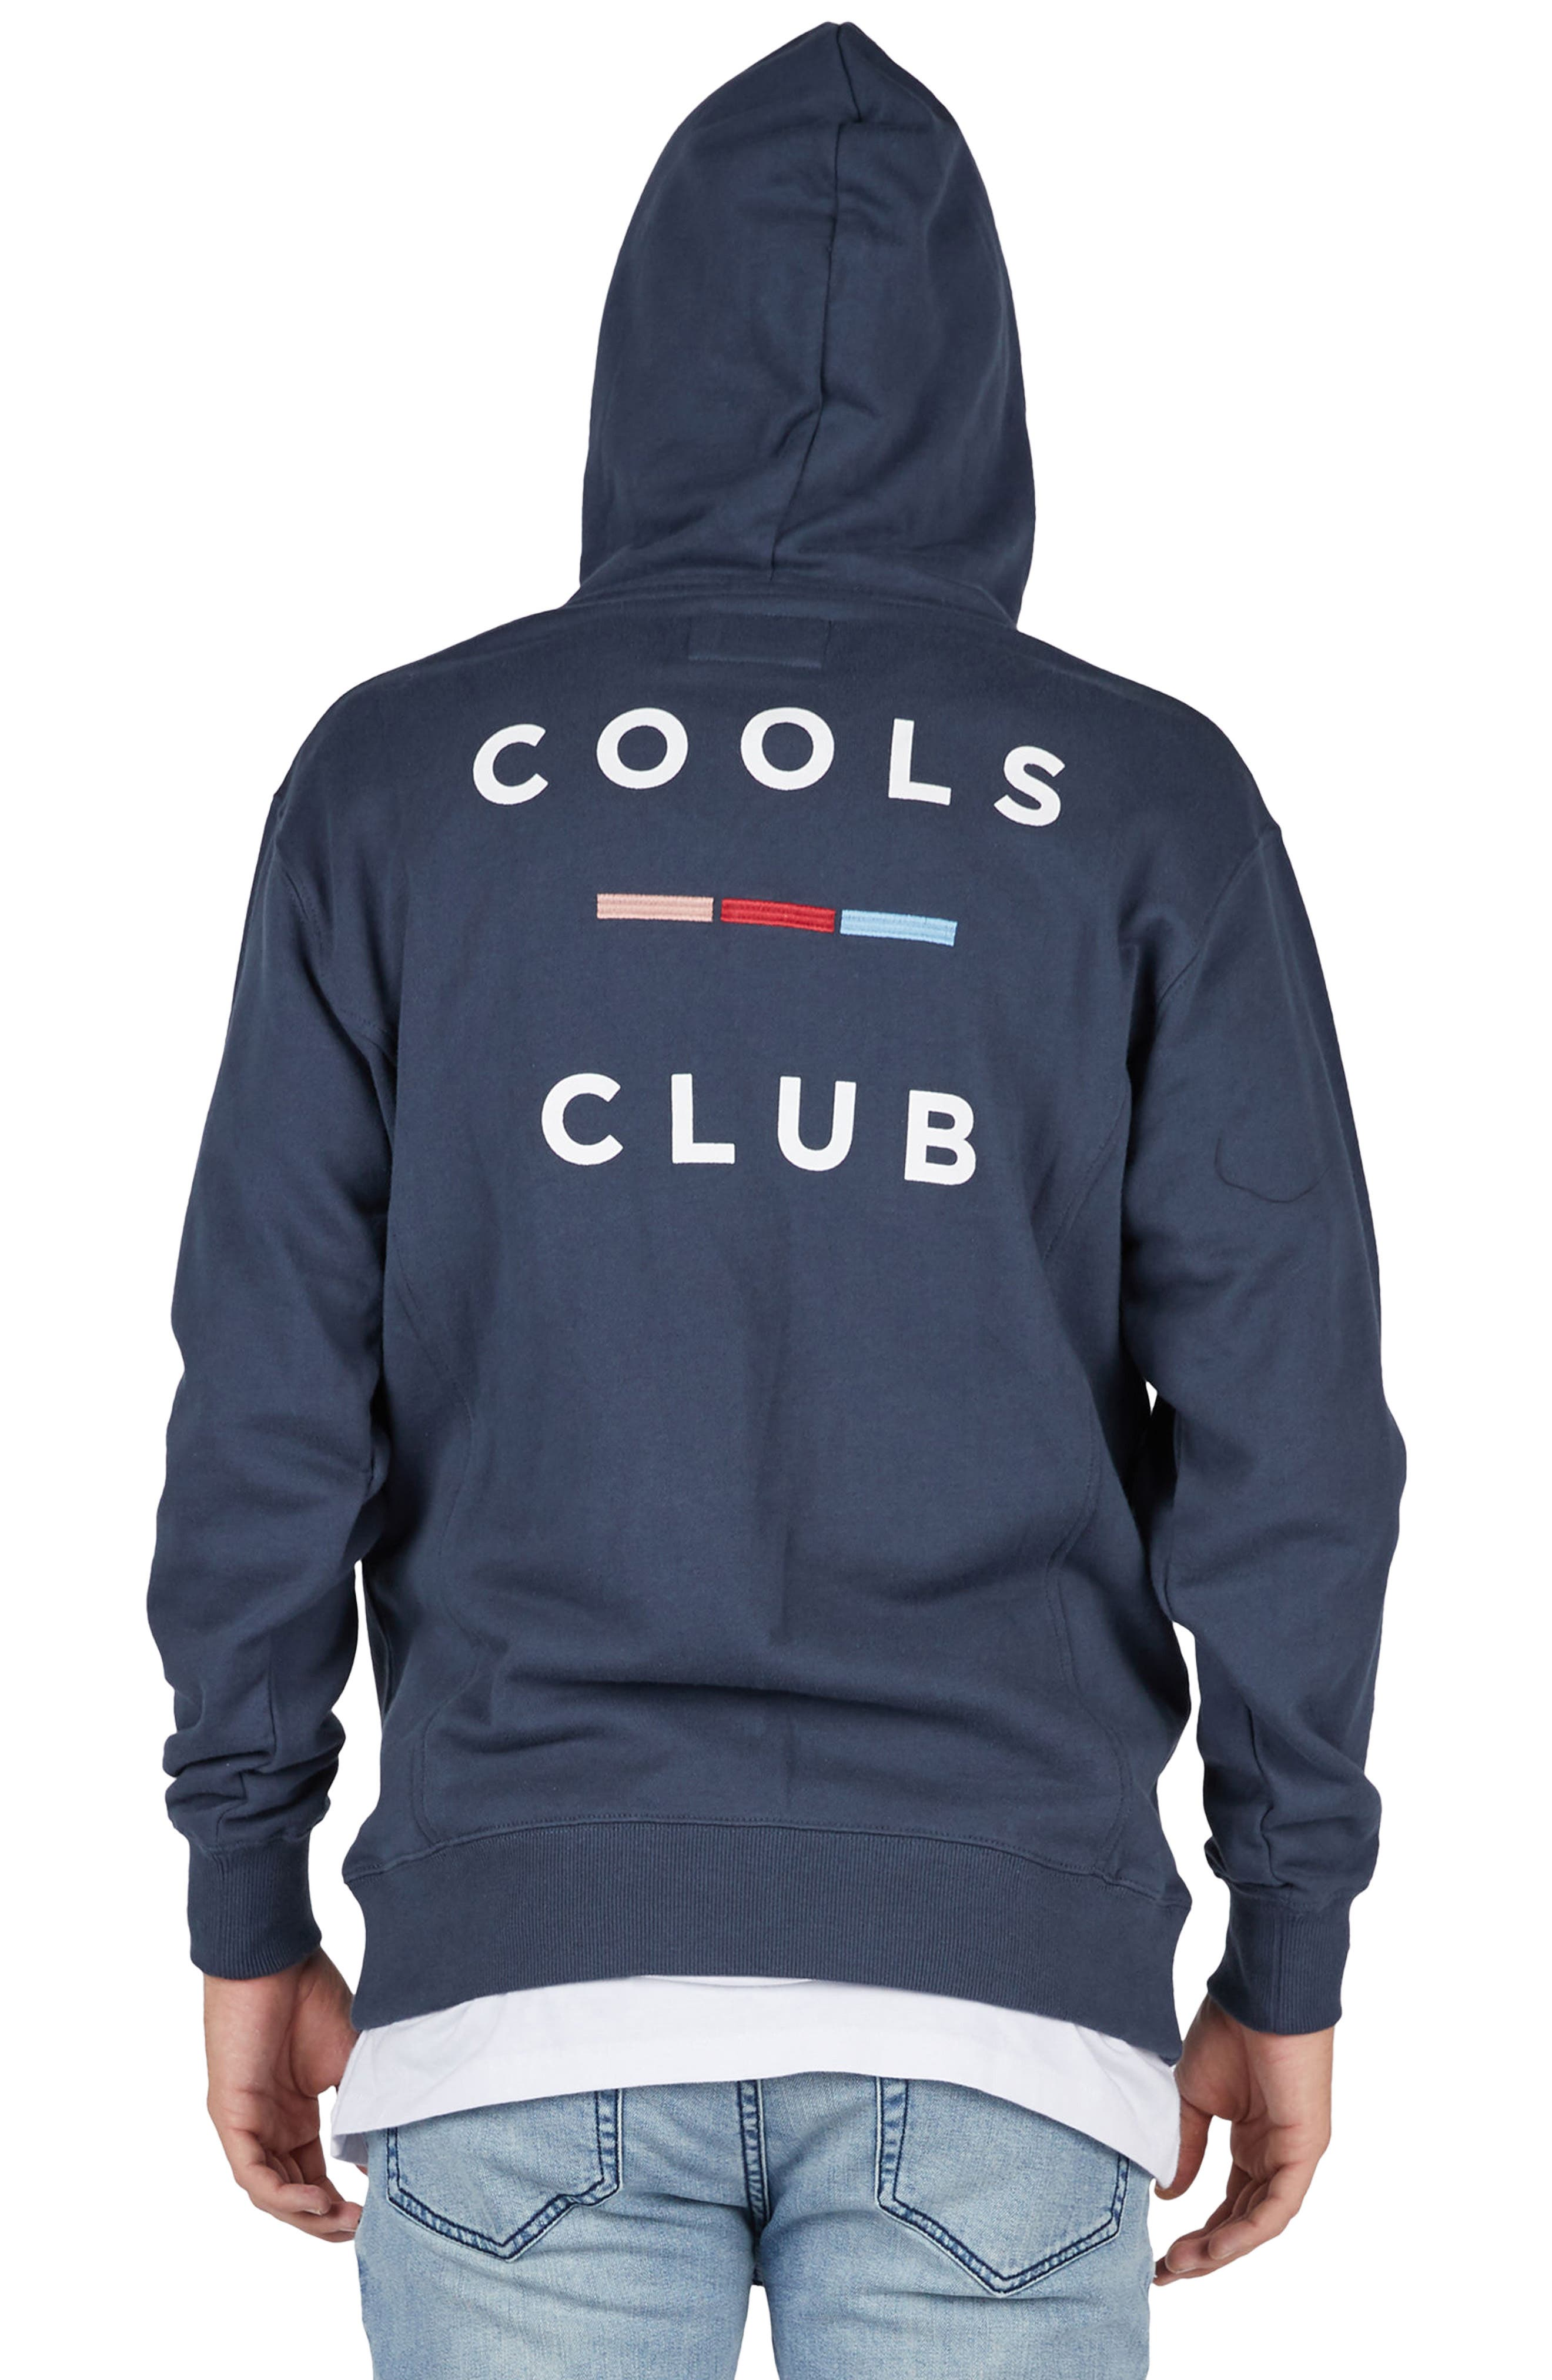 Cools Club Hoodie,                             Alternate thumbnail 2, color,                             411